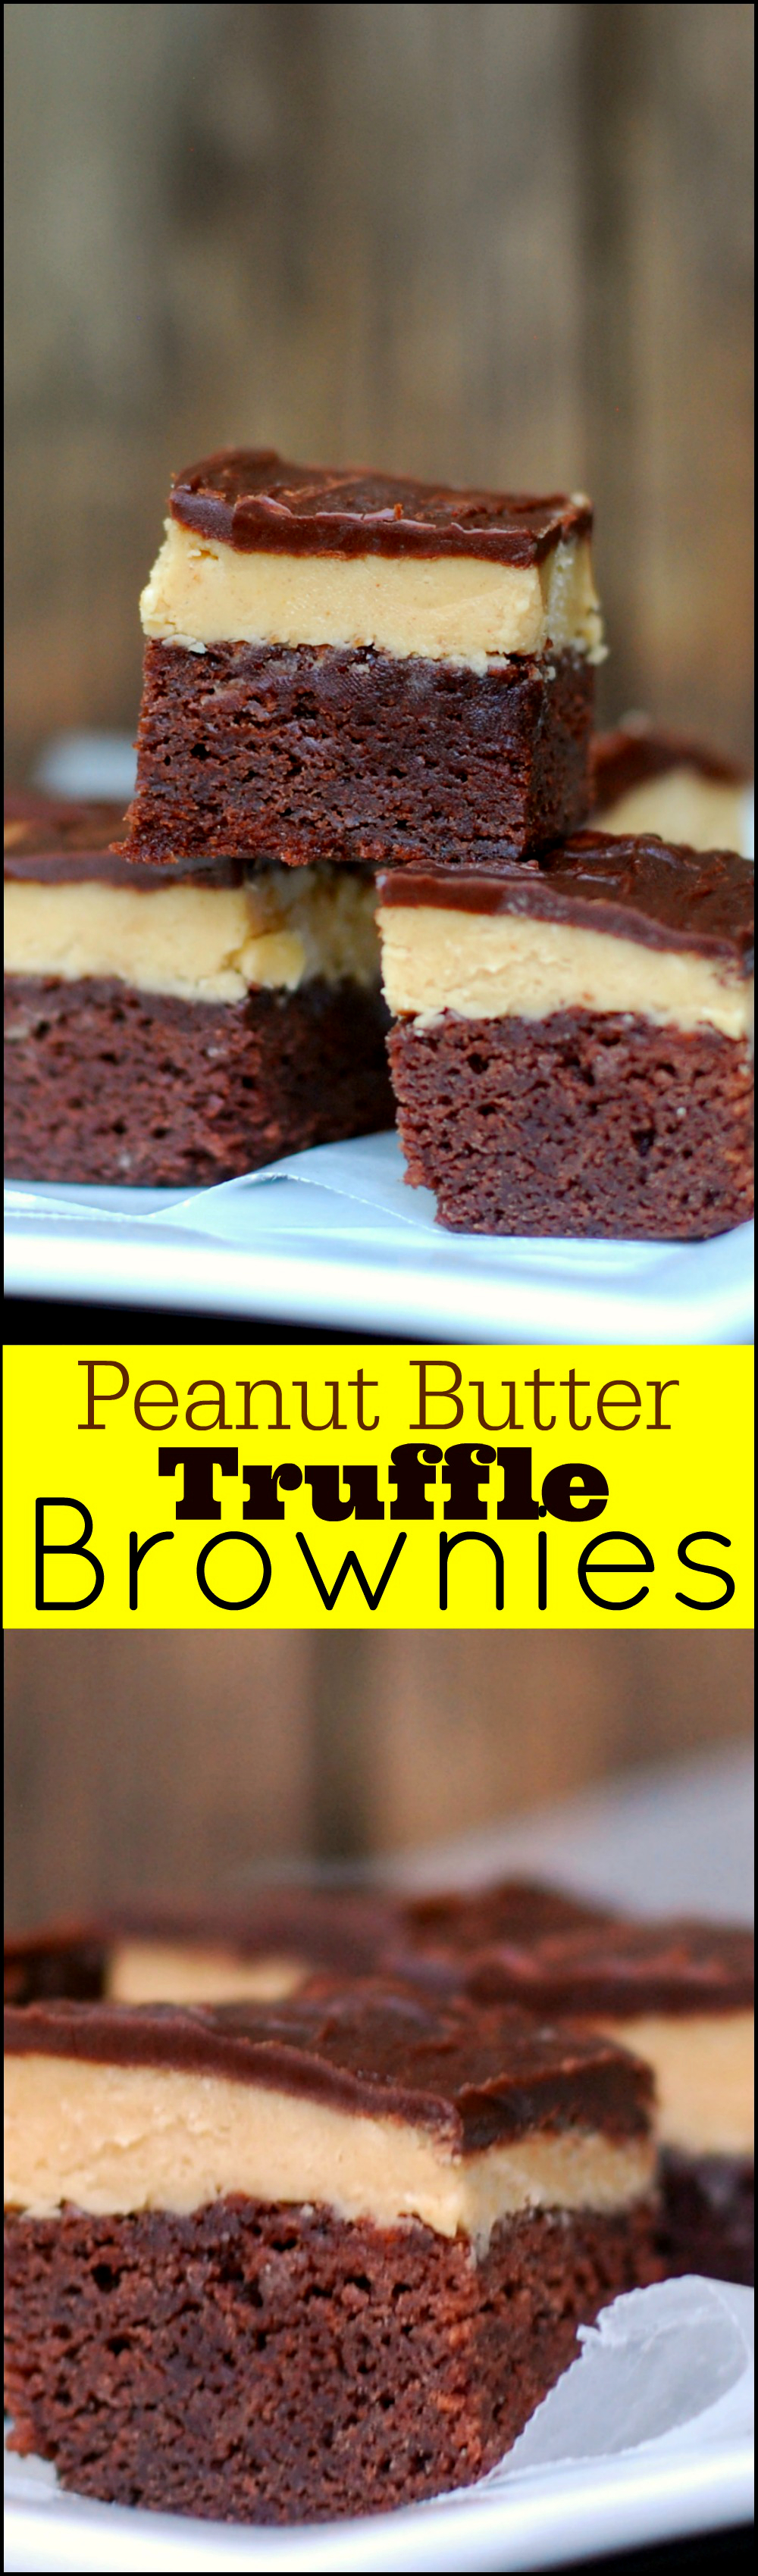 Peanut Butter Truffle Brownies - Aunt Bee's Recipes